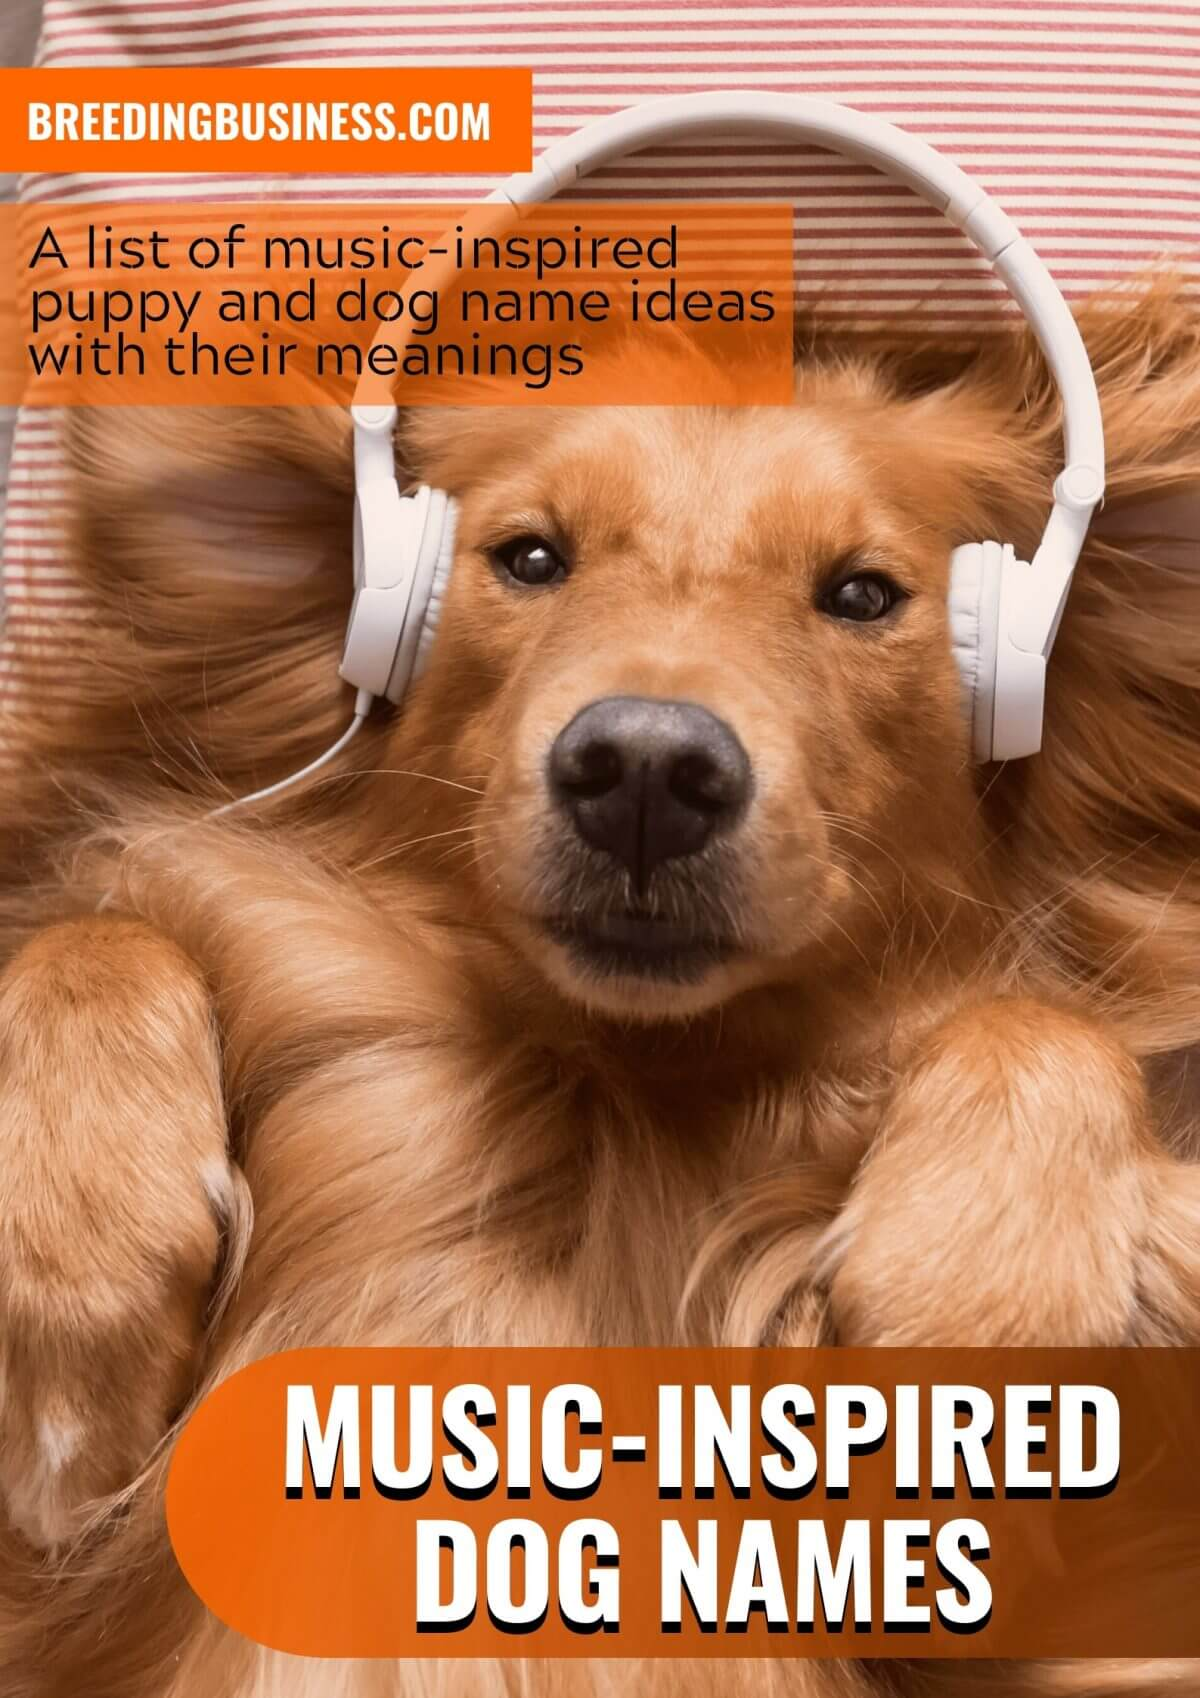 music-inspired dog names